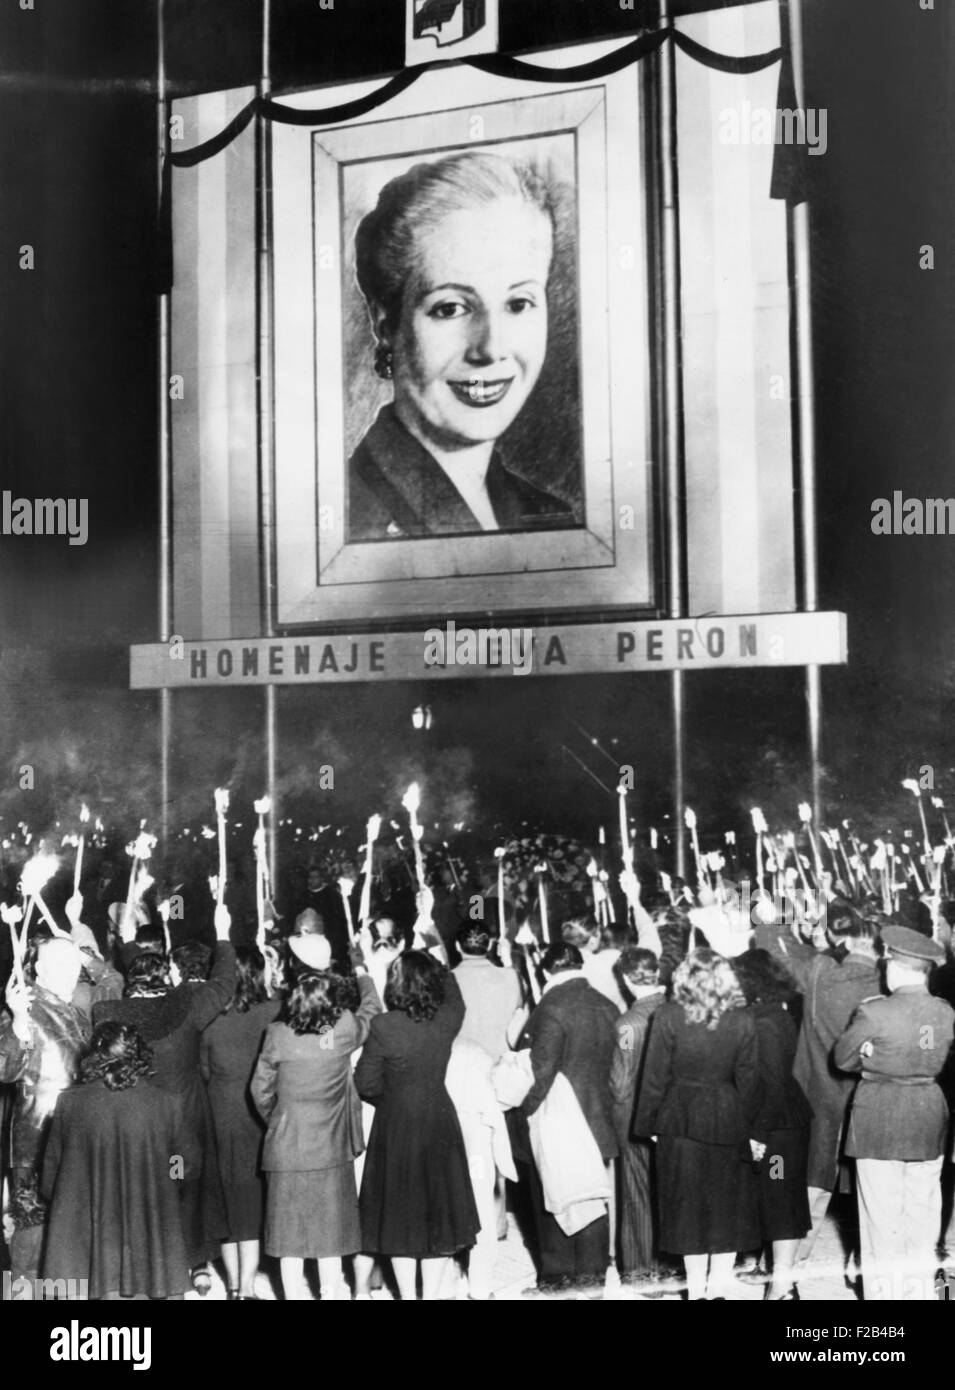 Honor Eva Peron. Argentines mourning the death of Eva Peron beneath a huge portrait of the deceased wife of their - Stock Image